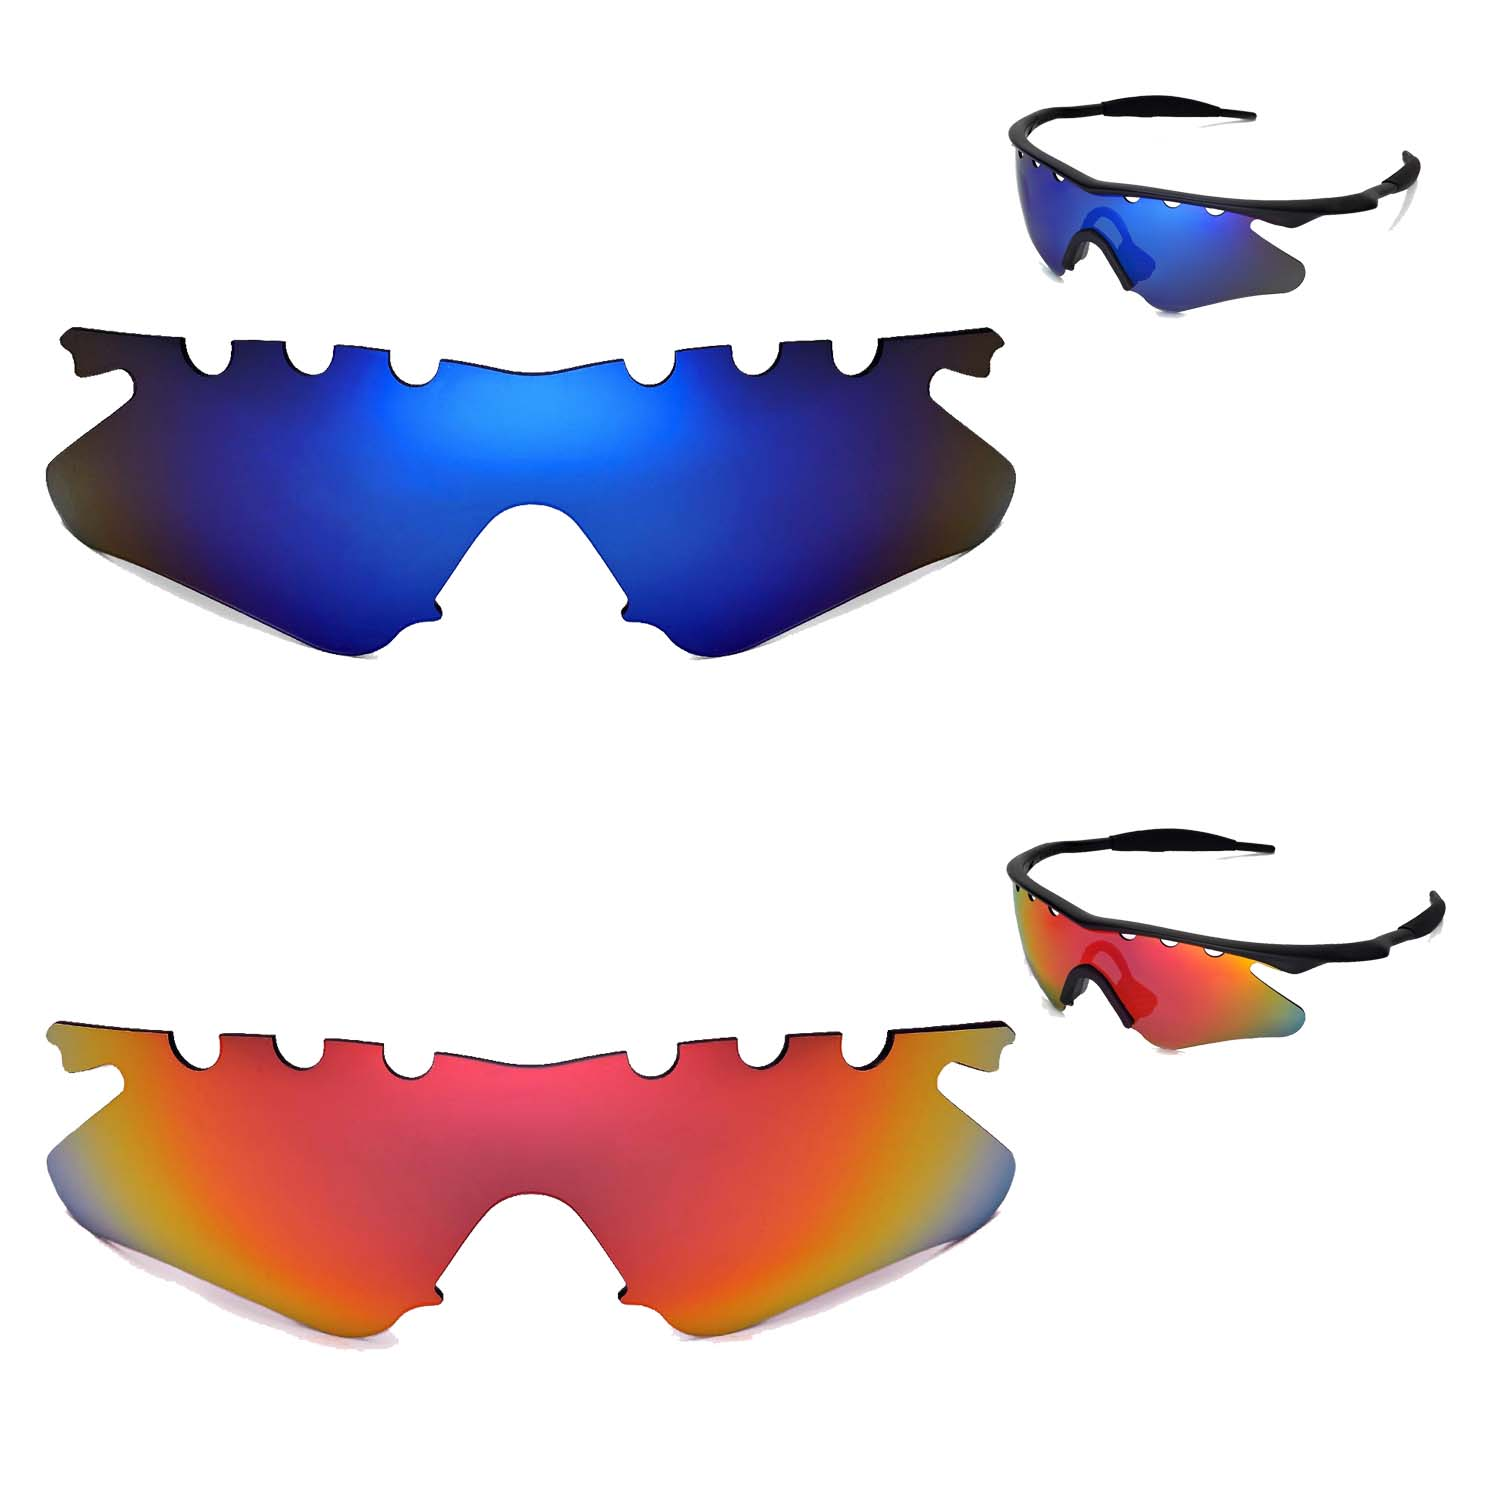 068acee5810 Details about New Walleva Polarized Fire Red+ Ice Blue Vented Lenses For  Oakley M Frame Heater